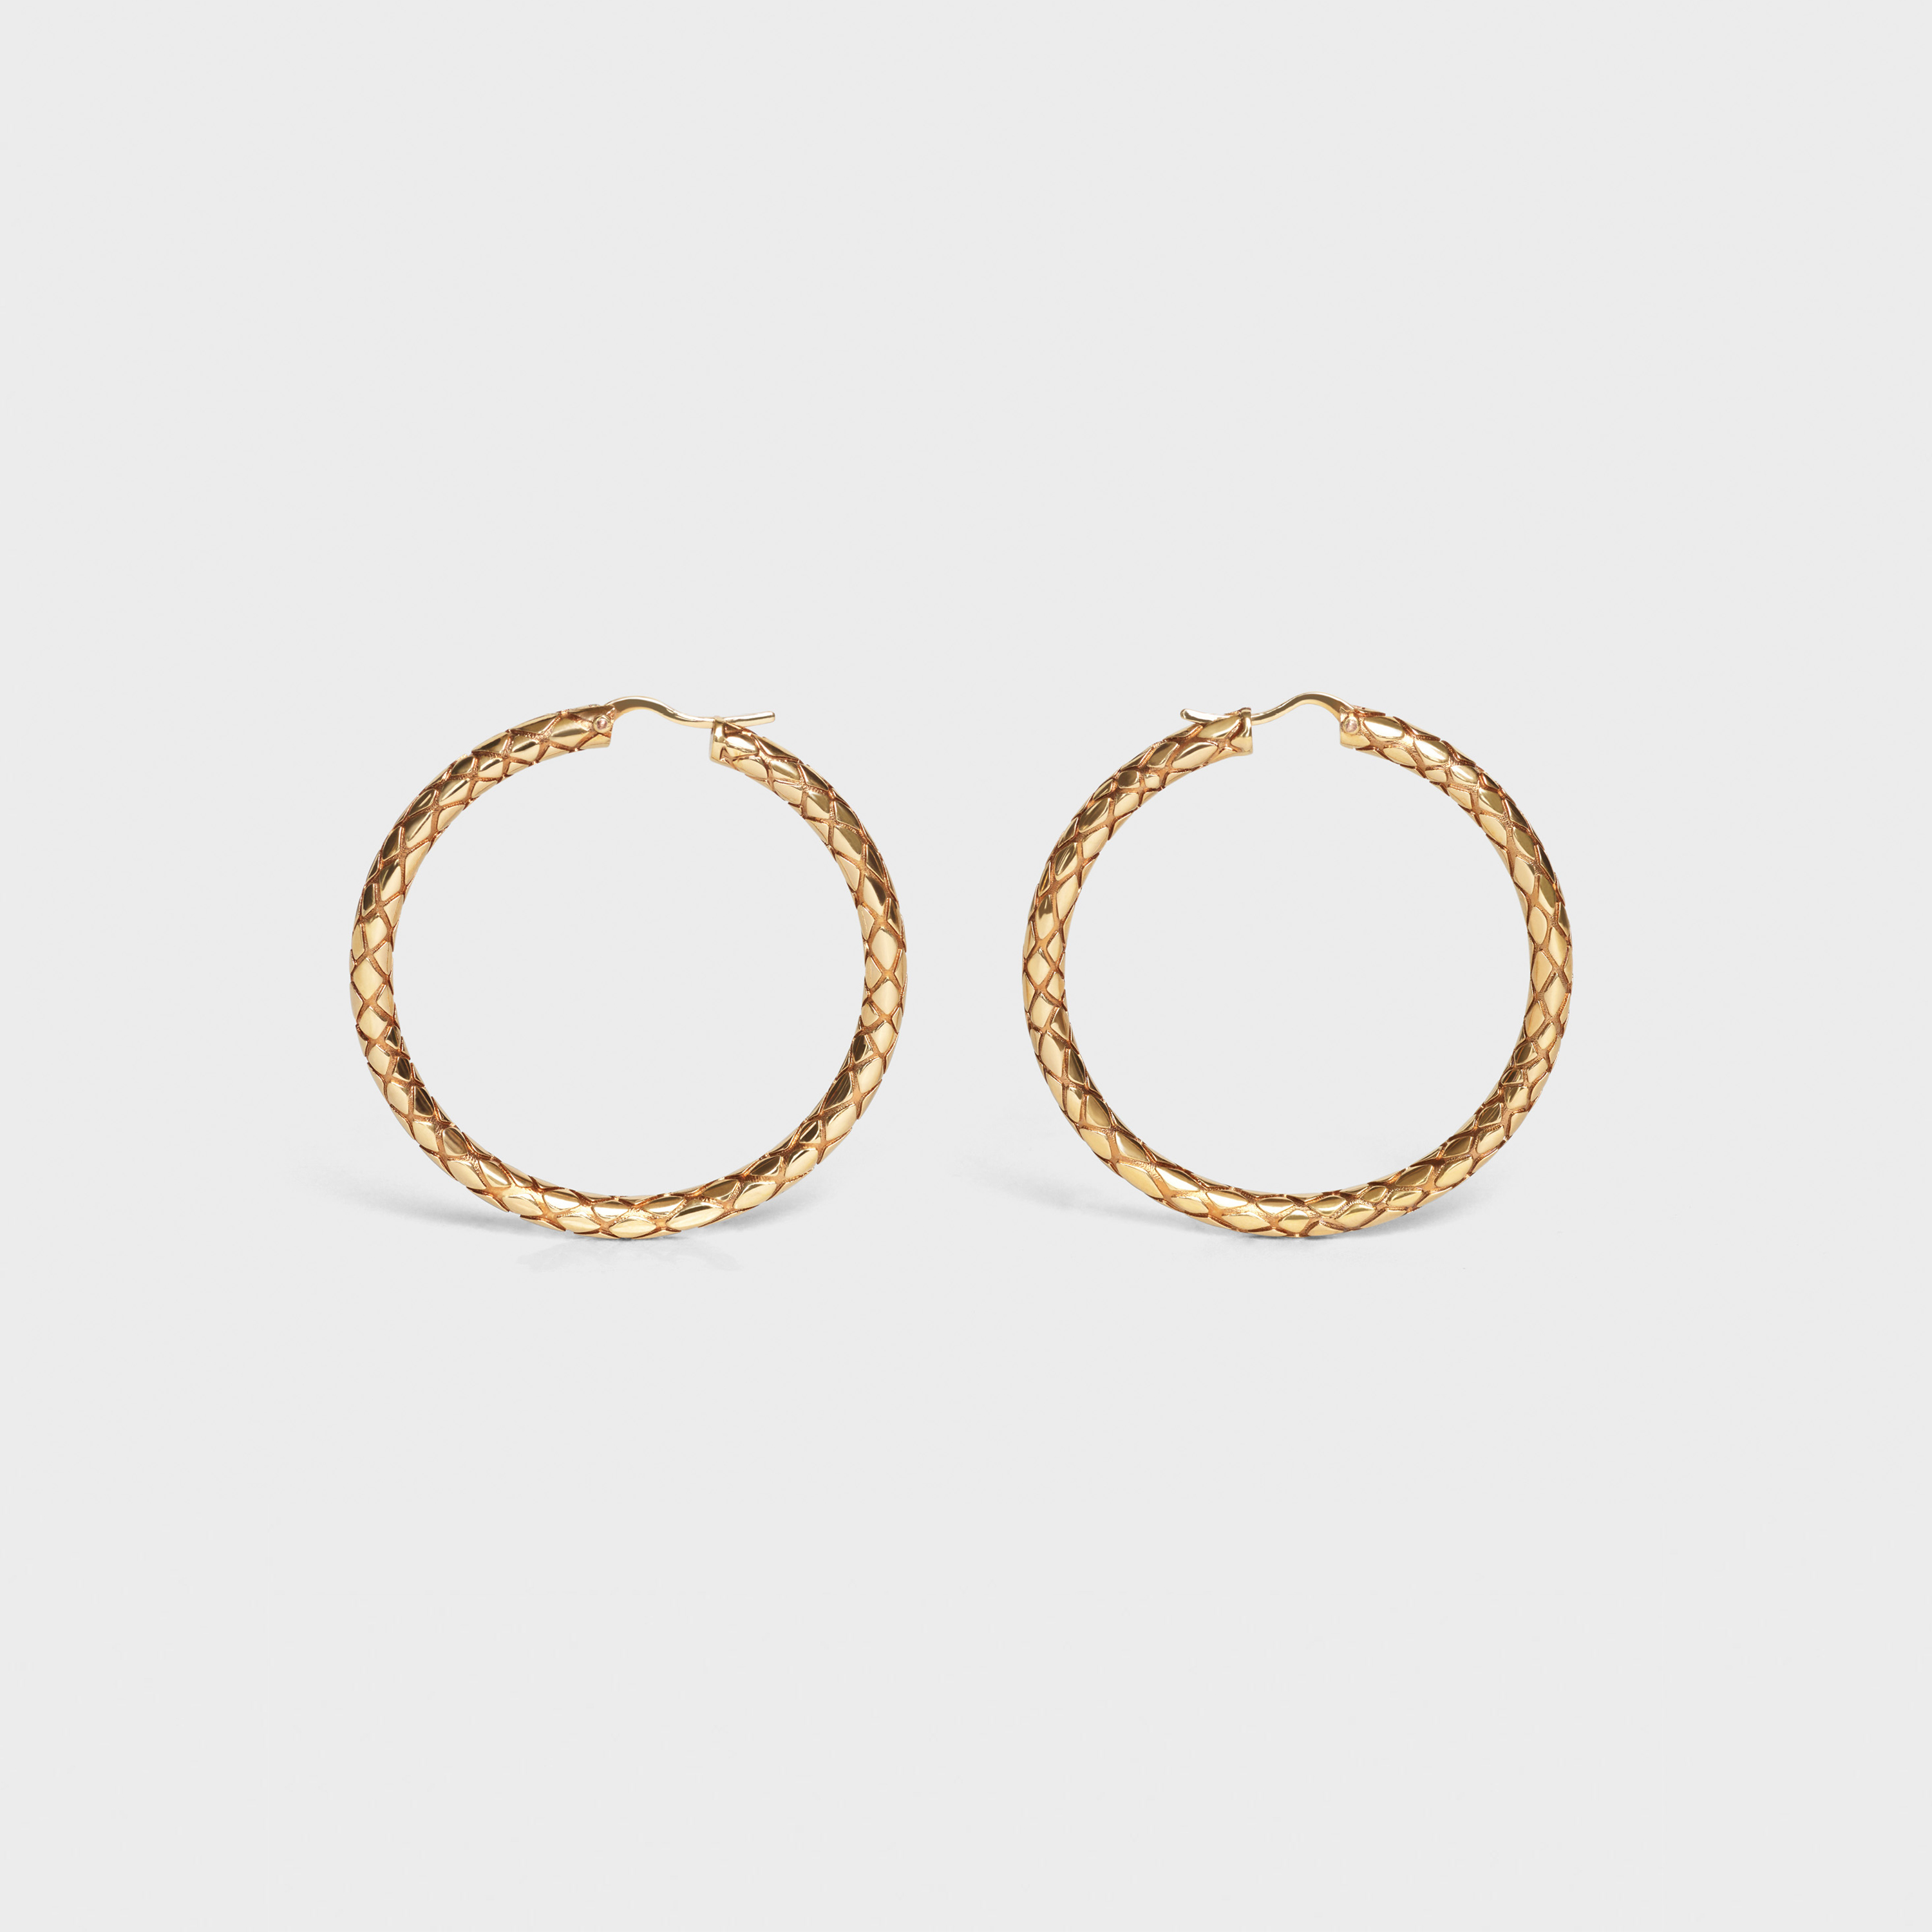 Celine Animals Bold Hoops in Brass with Vintage Gold finish | CELINE